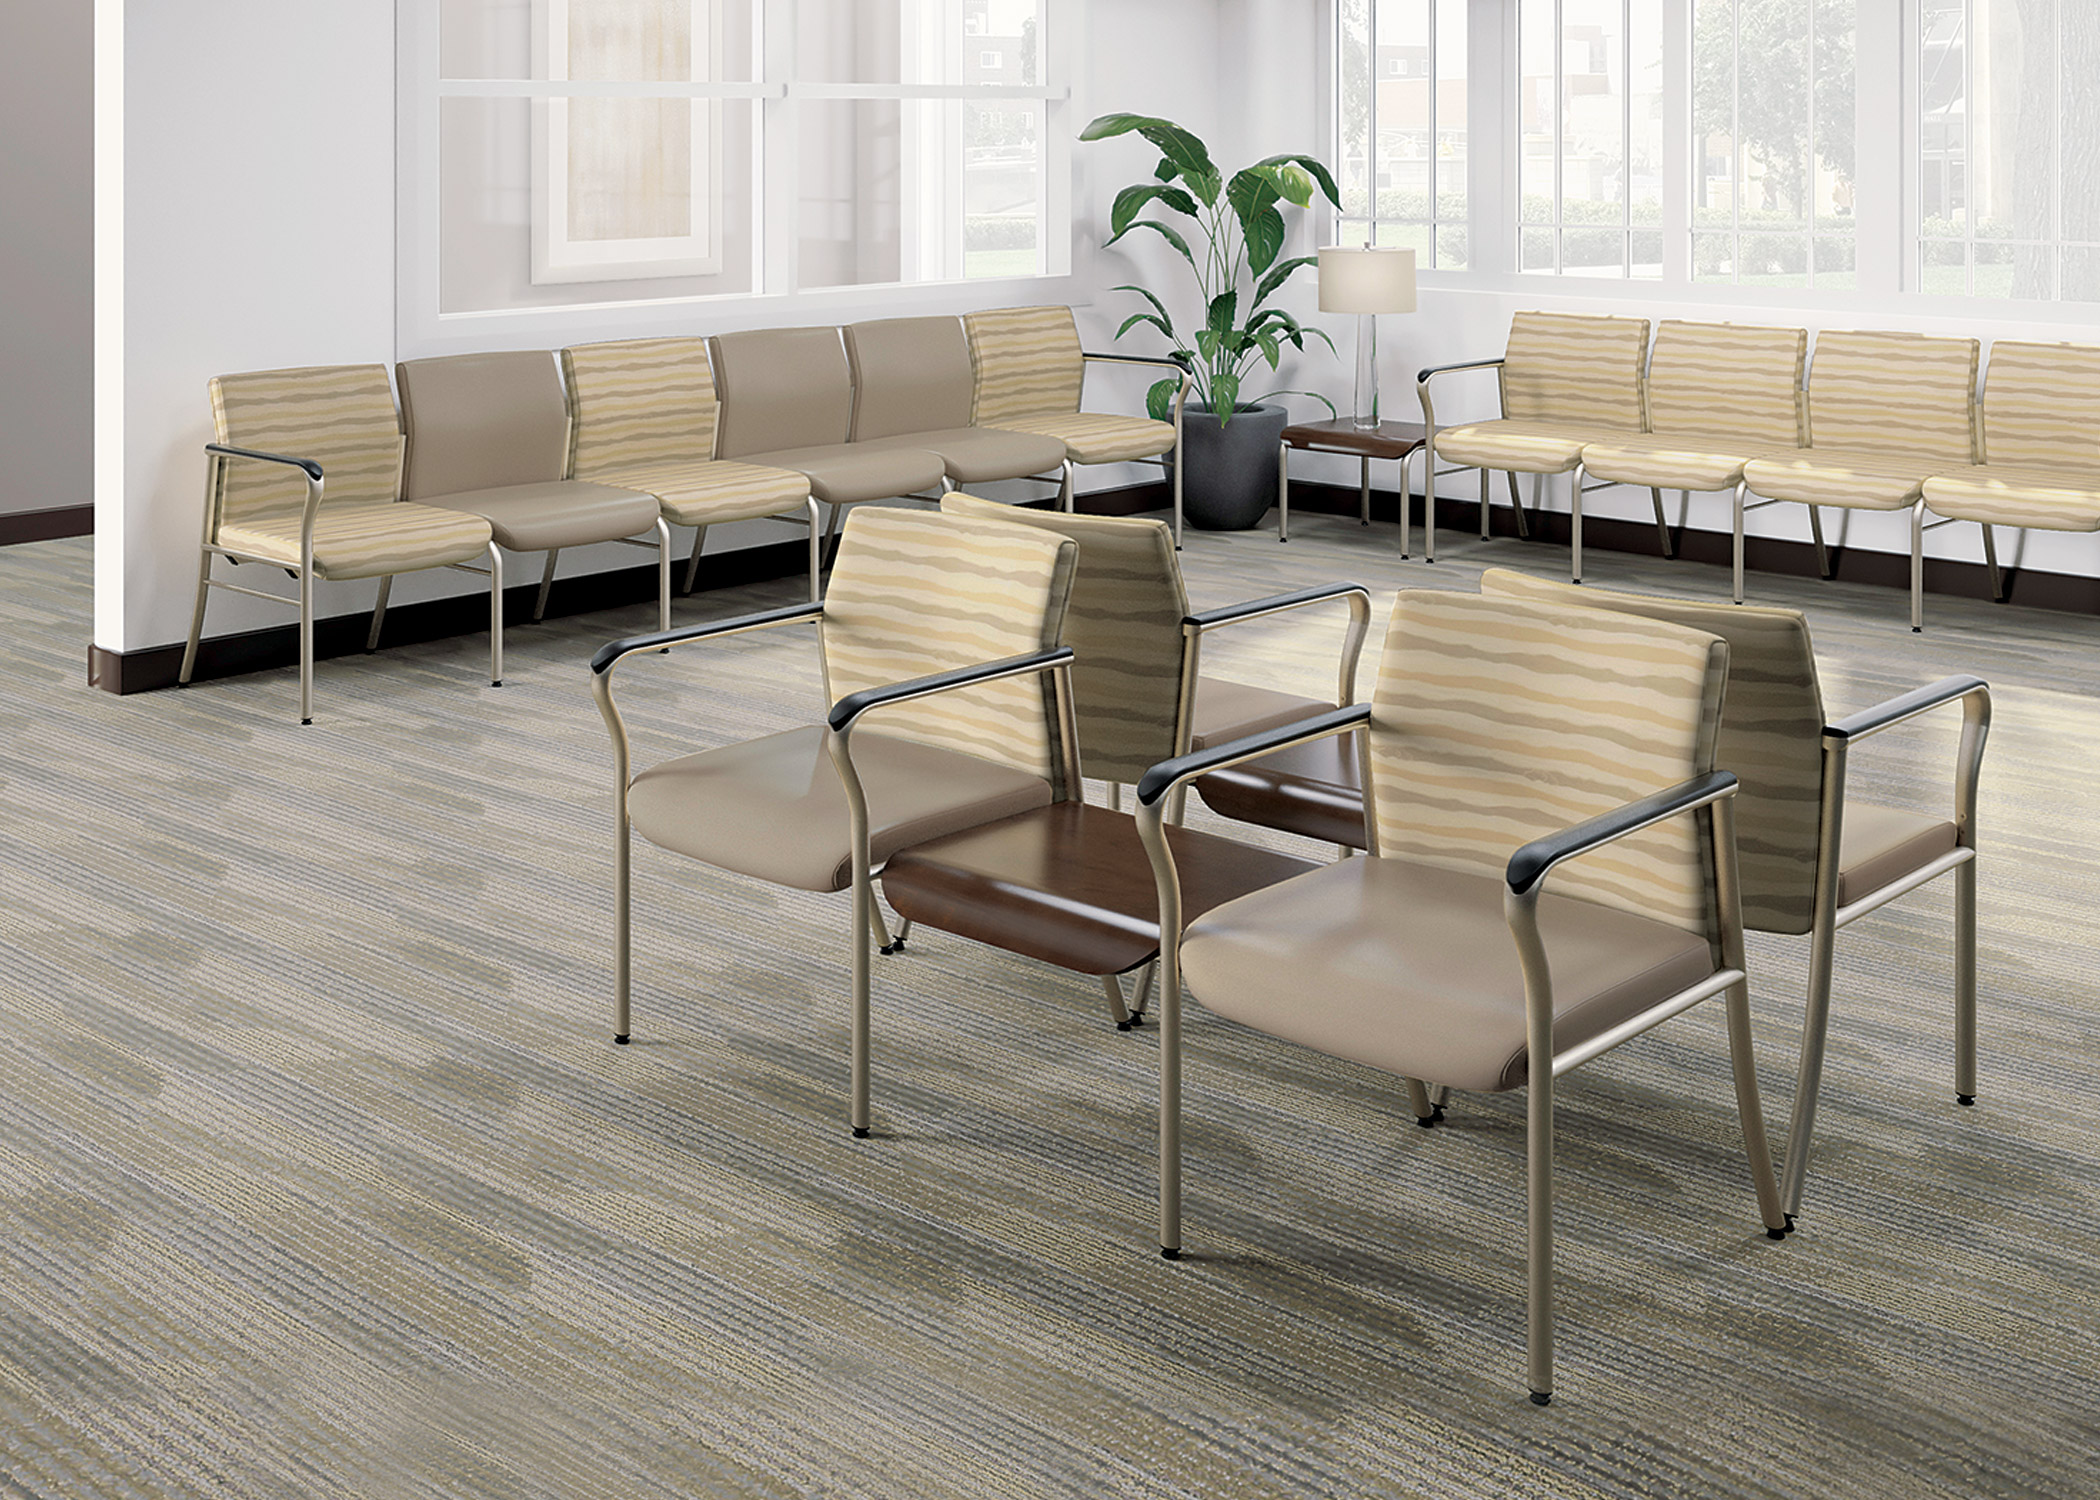 Confide National Office Furniture